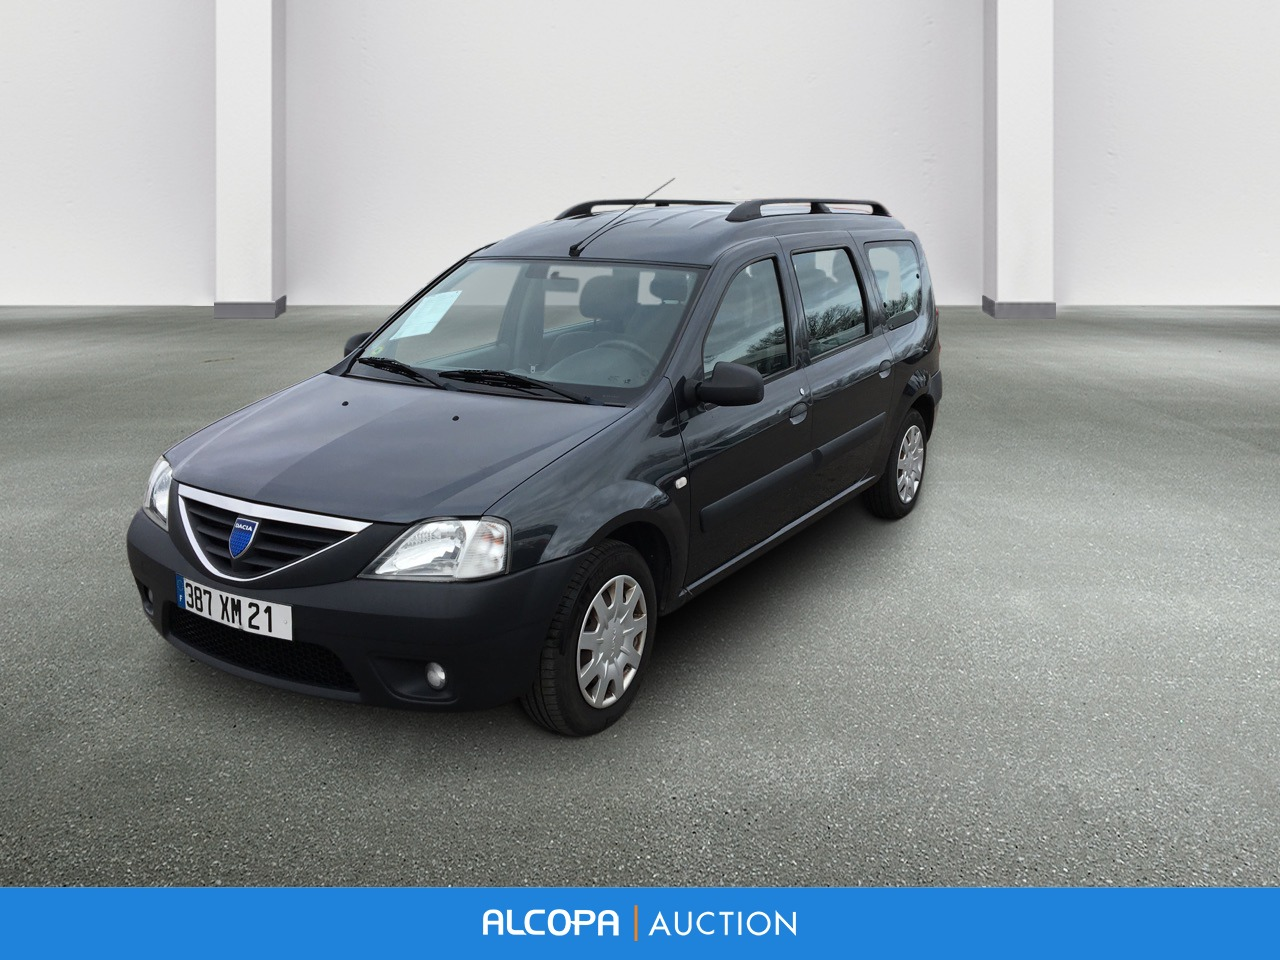 dacia logan mcv logan mcv 1 6 16v 7 places laur ate alcopa auction. Black Bedroom Furniture Sets. Home Design Ideas